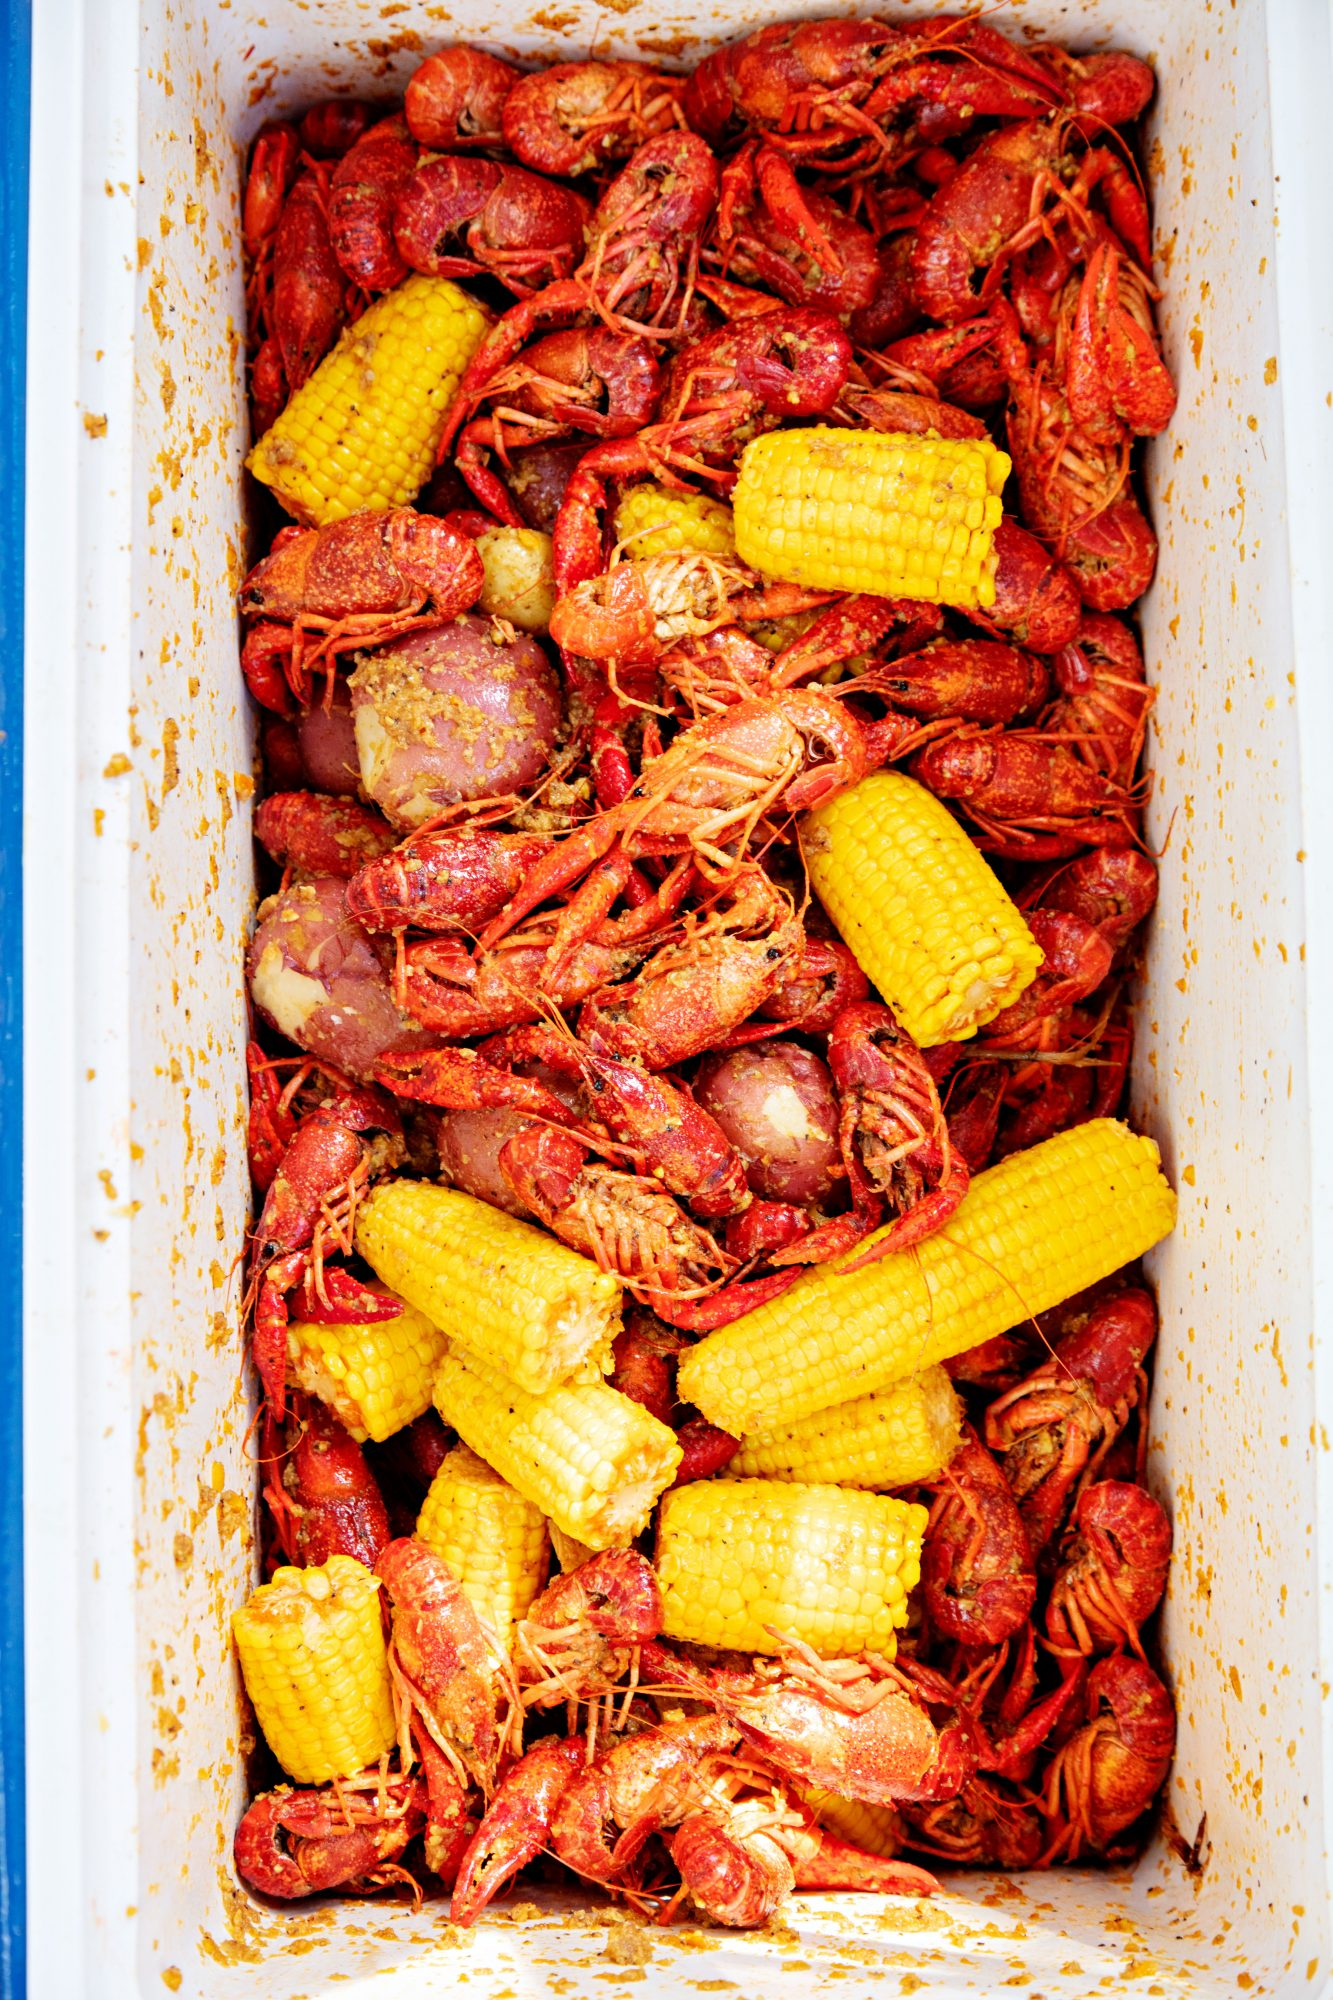 Seasoned Crawfish, Corn, and Potatoes in Cooler at Dao Family's Viet-Cajun Crawfish Boil